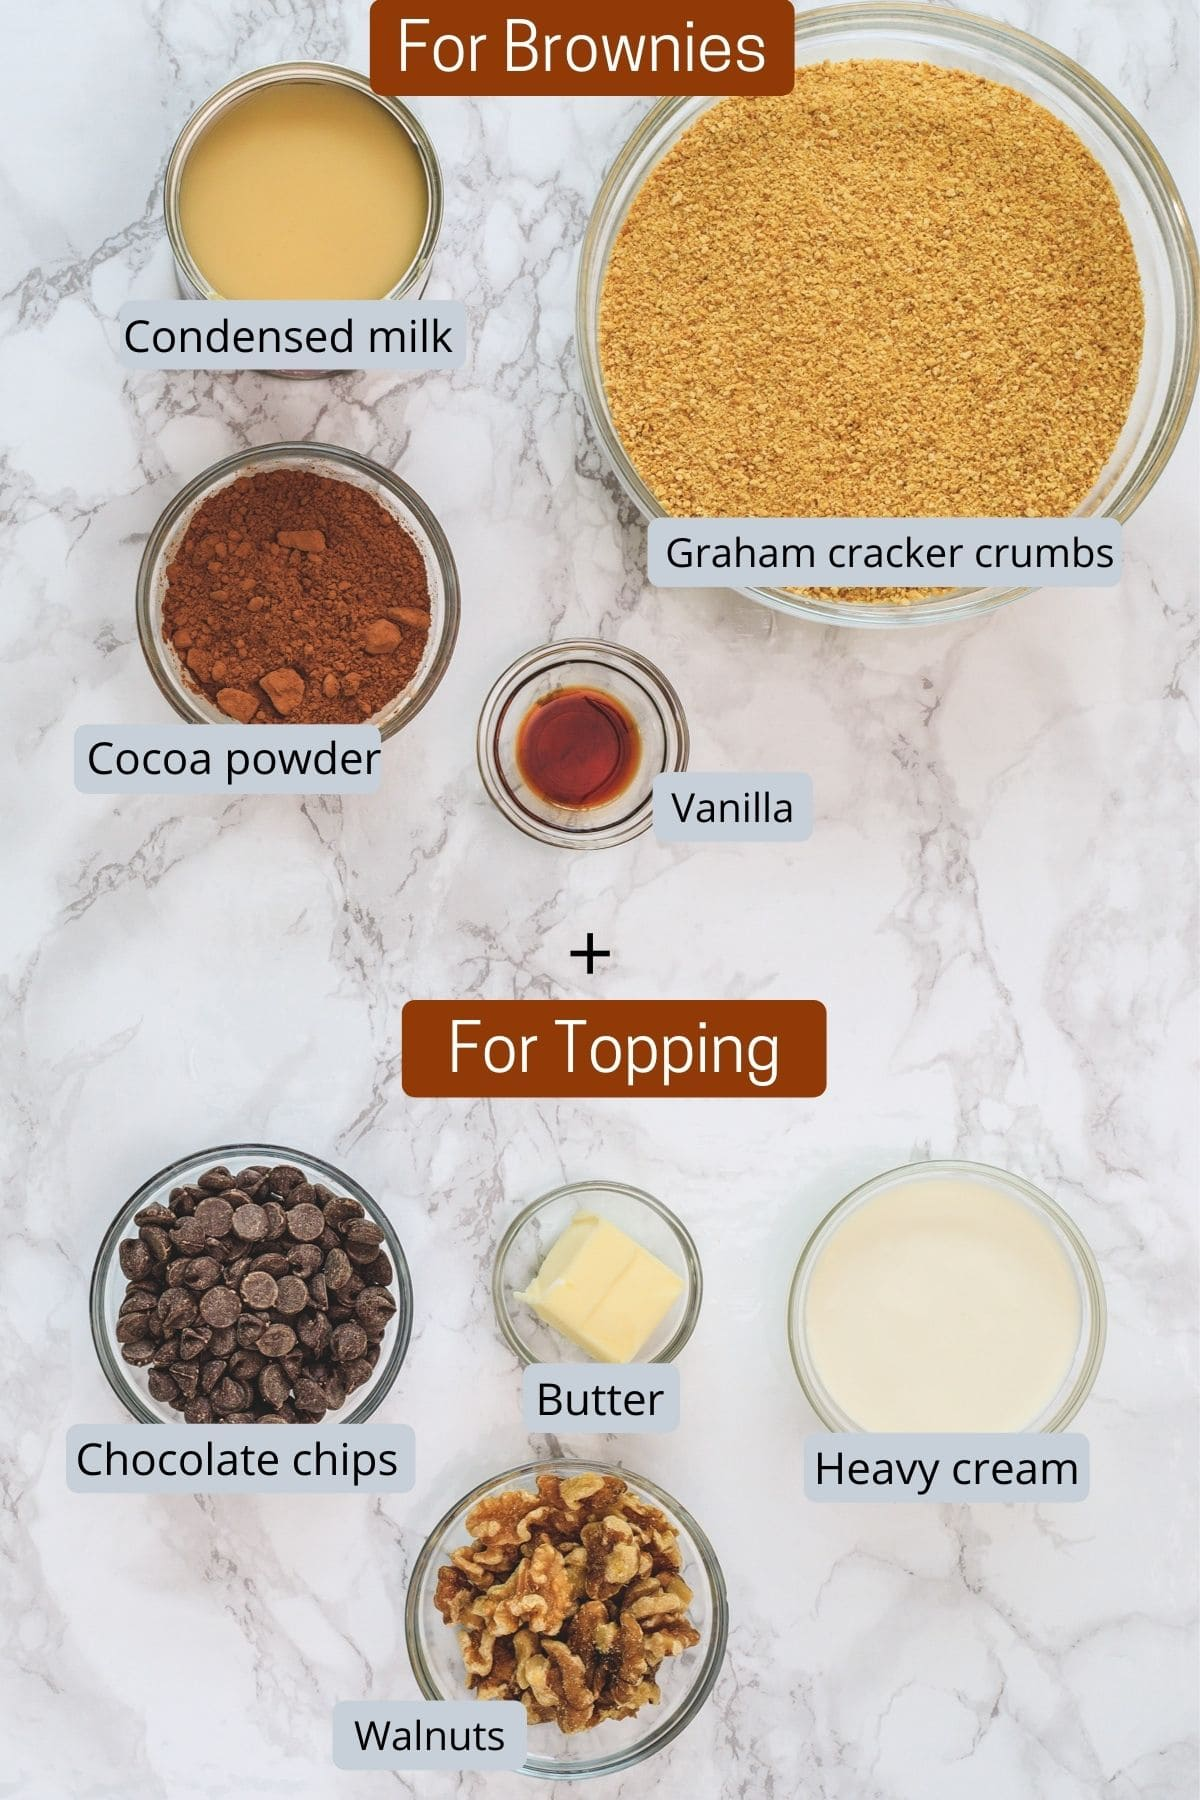 Ingredients used in no bake brownies & topping includes condensed milk, cocoa powder, vanilla, cracker crumbs, cream, chocolate chips, butter, walnuts.